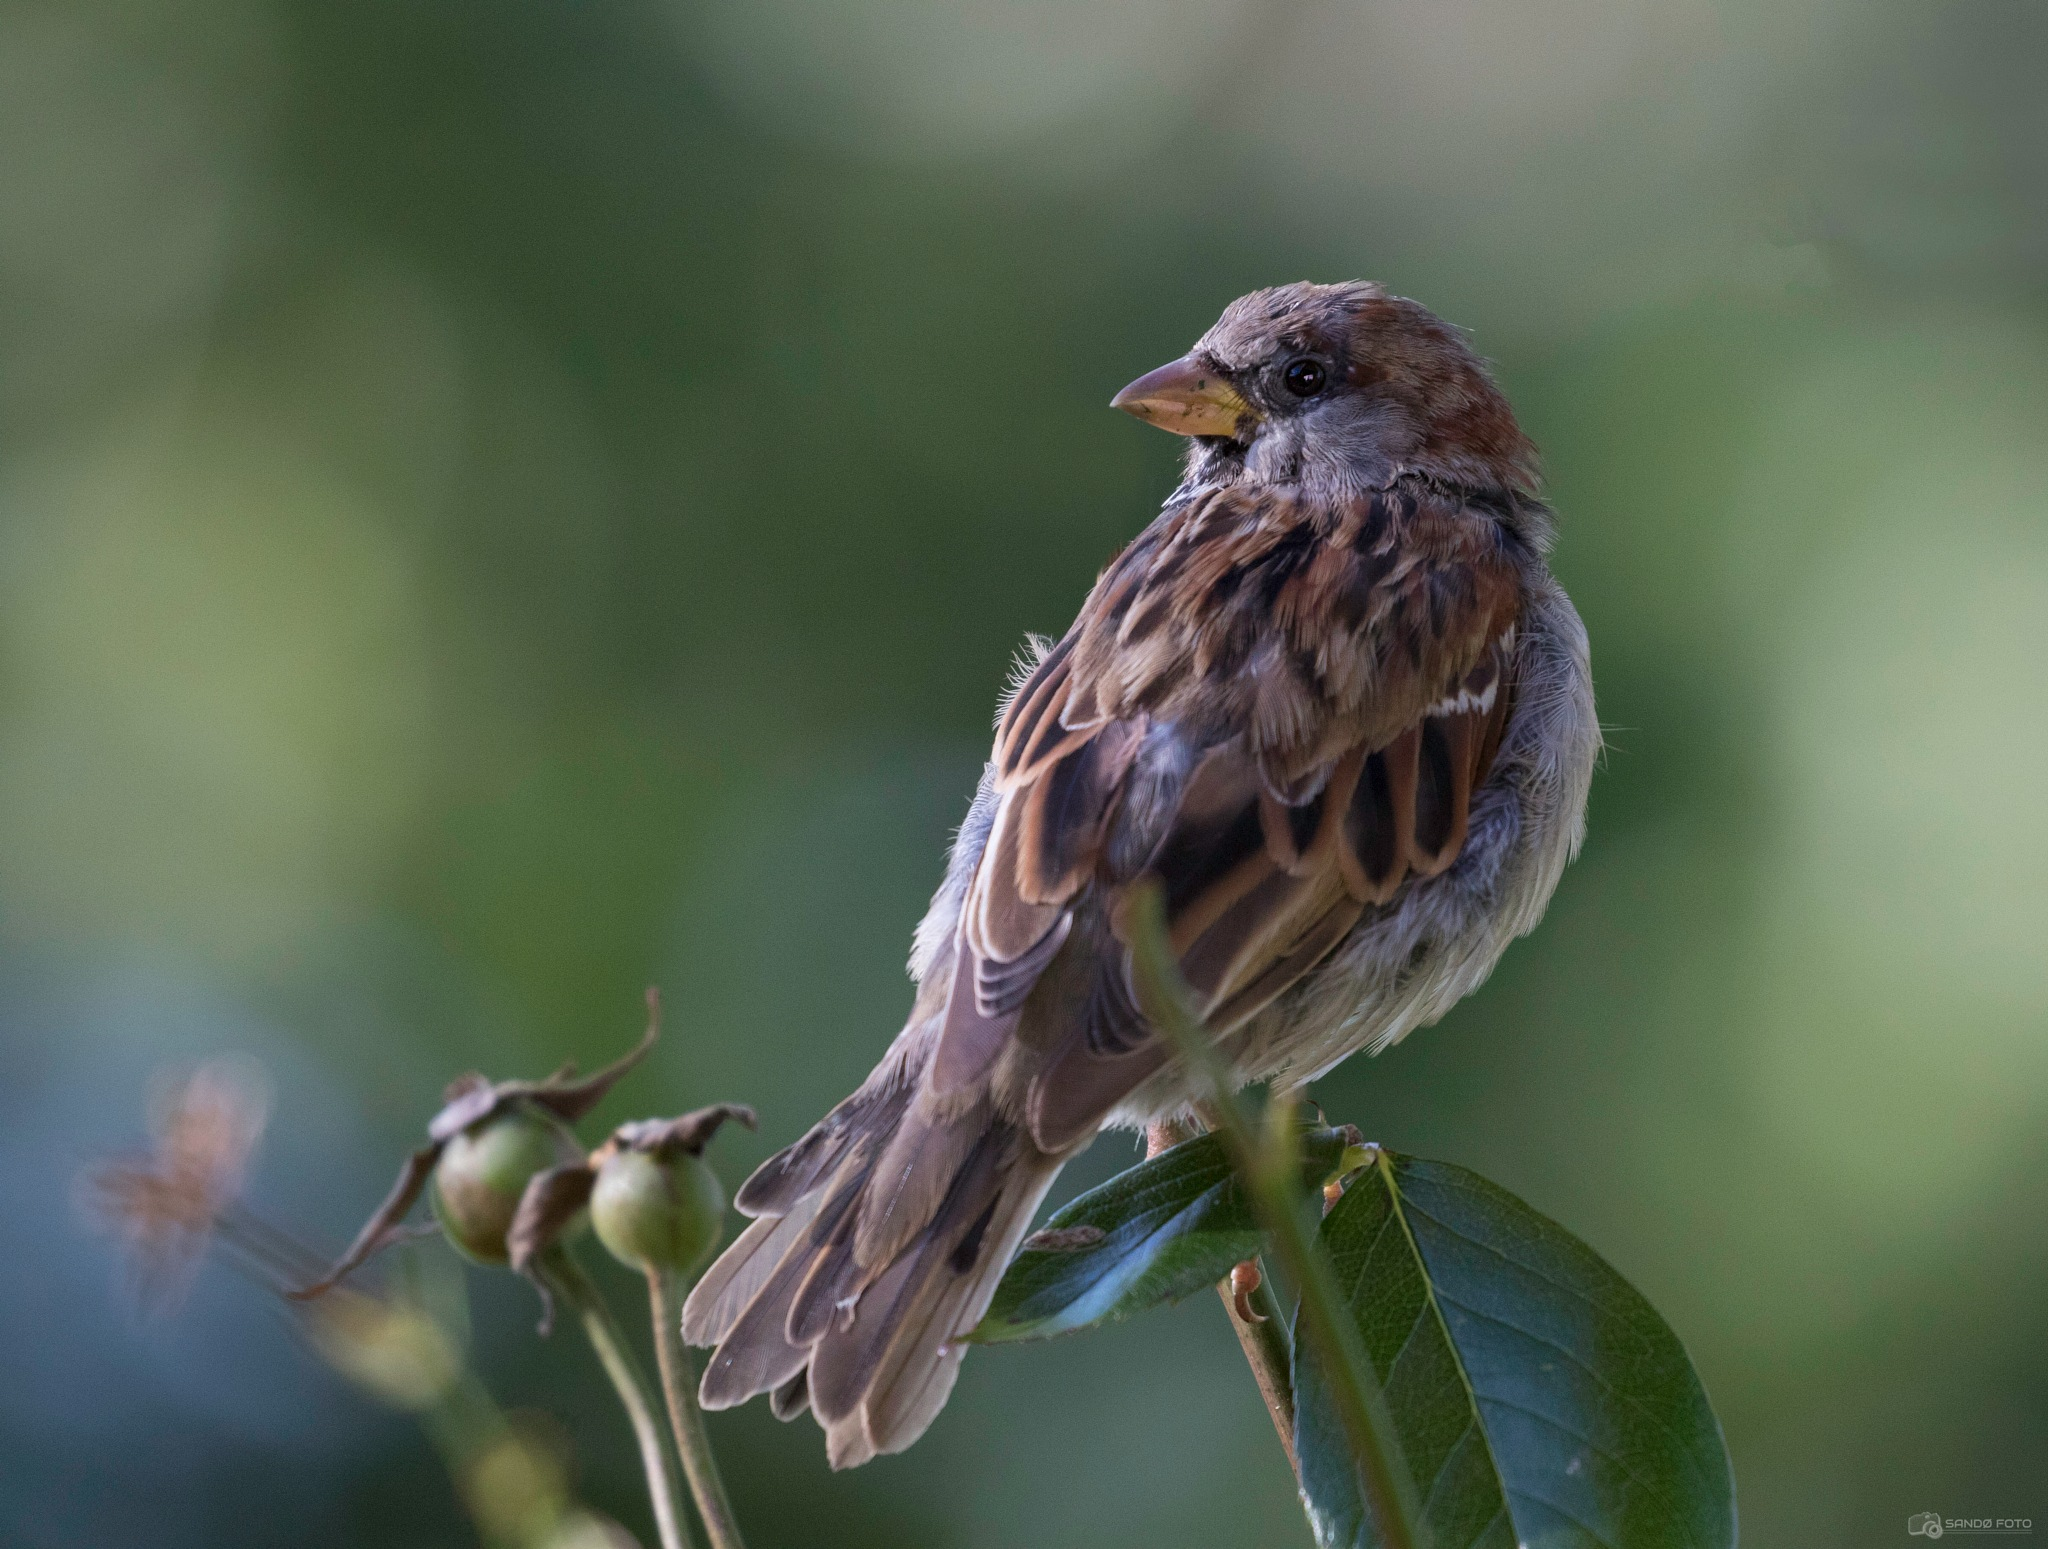 A lonely Sparrow by tjsandofoto